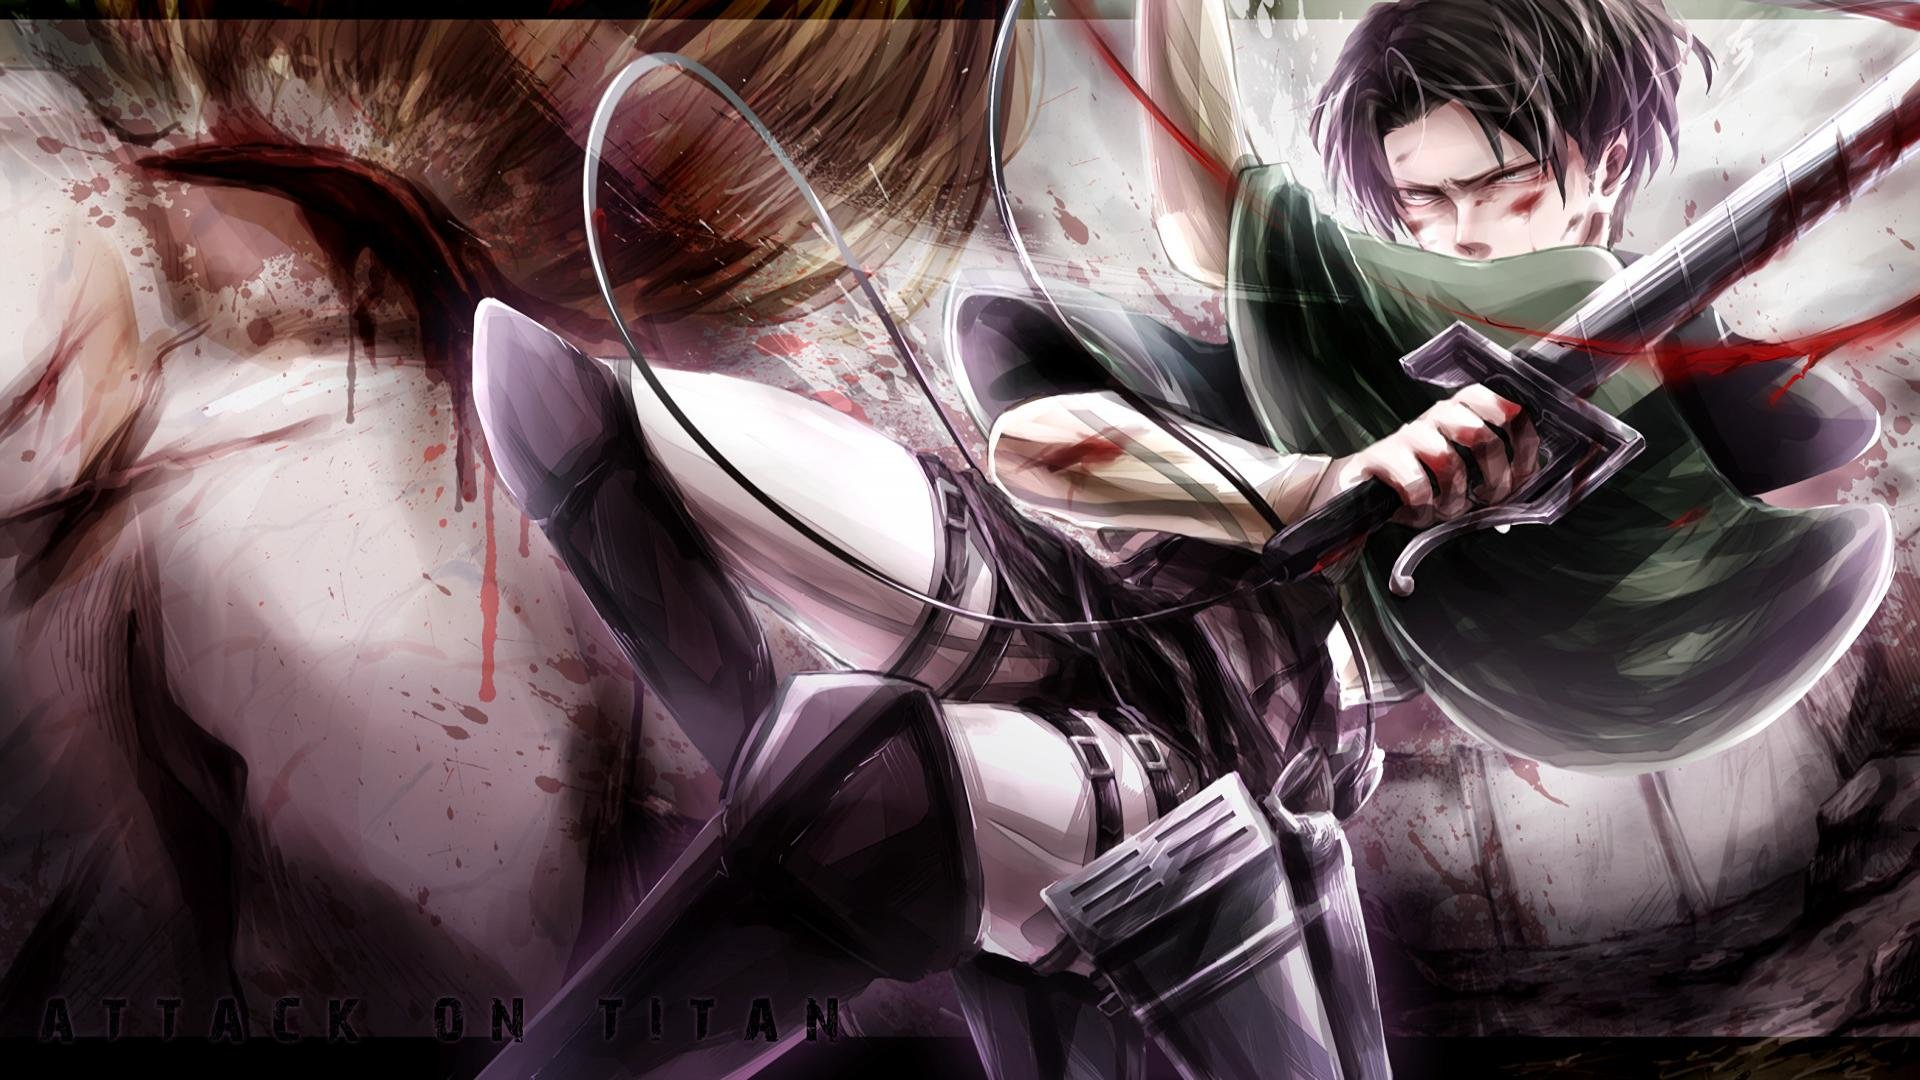 Awesome Levi Ackerman Free Wallpaper Id206245 For Full Hd Pc